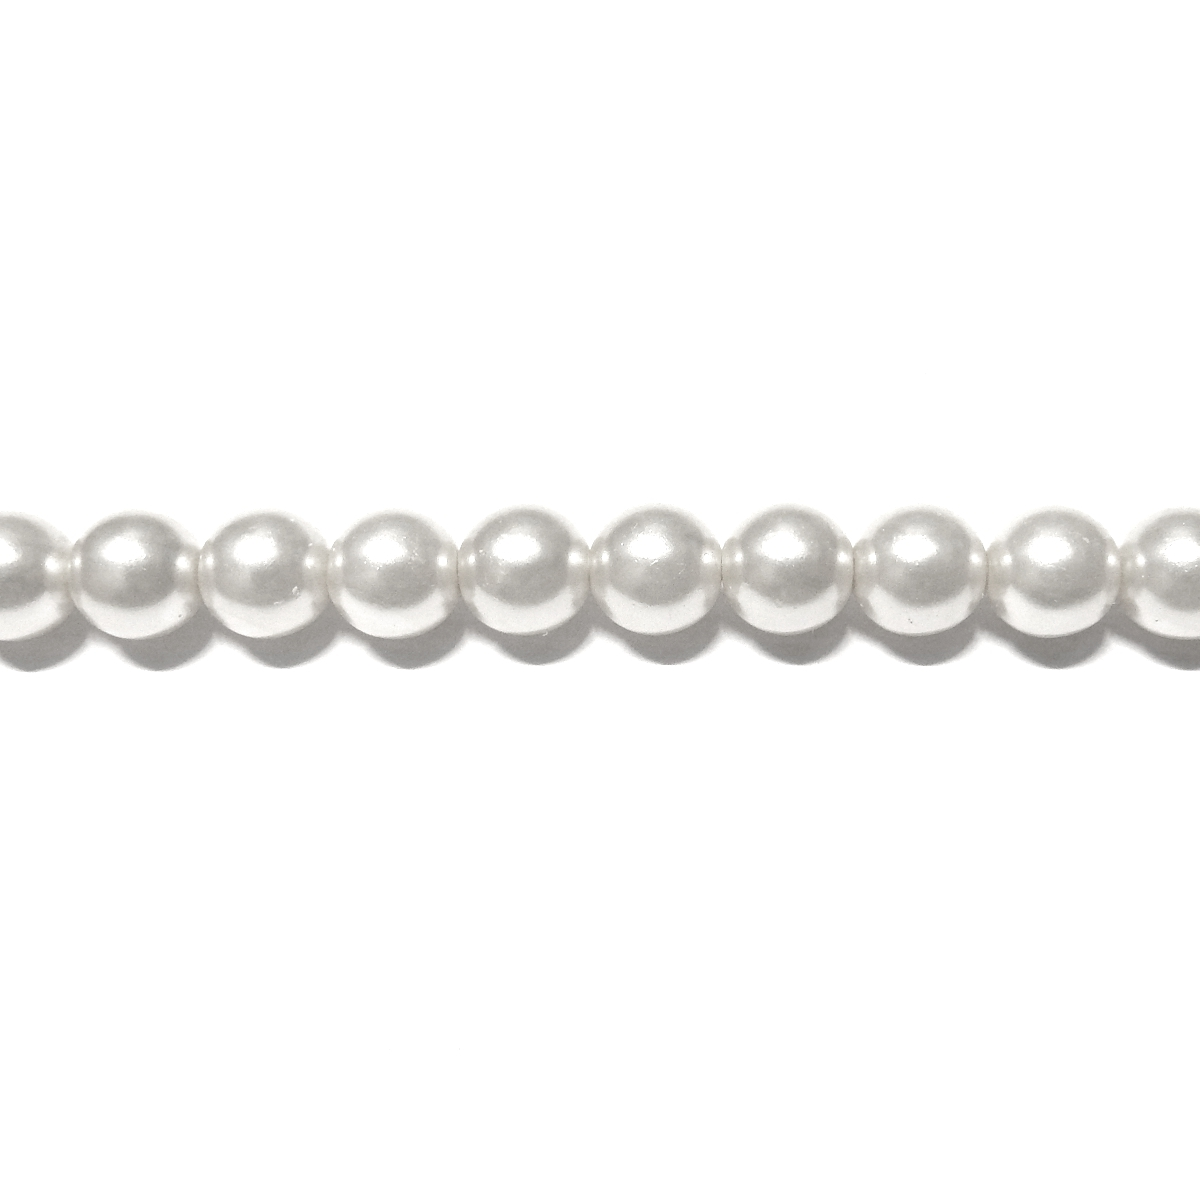 Round Glass Pearls 6mm - White Color